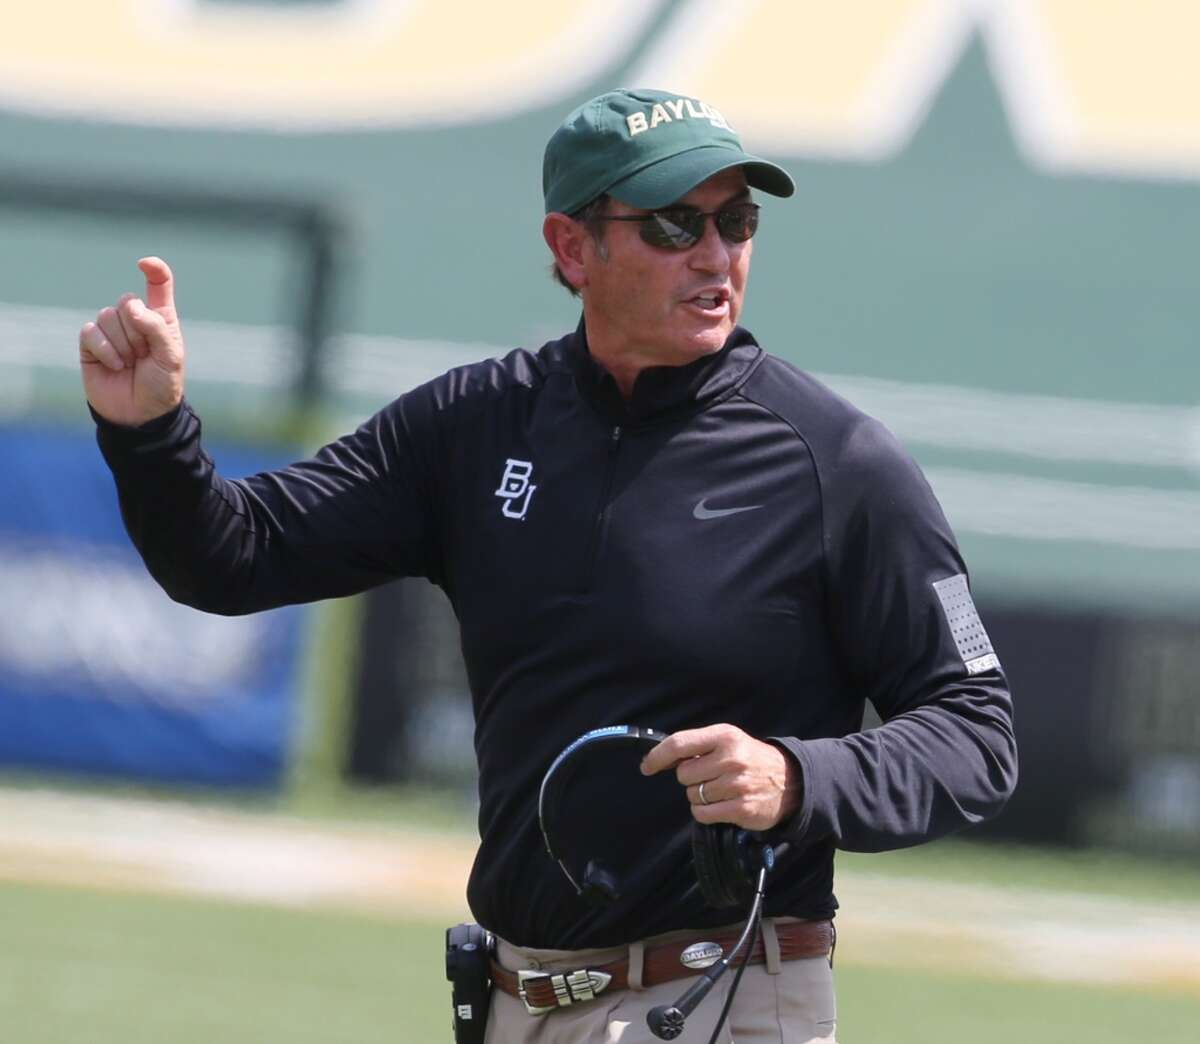 Coach of the year -- Baylor coach Art Briles. When he arrived at Baylor, the Bears had won 11 Big 12 games in their previous 12-season history in the conference. His transformation is complete after leading the Bears to an 11-1 record, their first Big 12 football title and their first BCS bowl appearance Jan. 1 against UCF in the Fiesta Bowl. It's the kind of building project that should result in Briles one day having a statue in his honor at the new Baylor Stadium that will be opening next season.